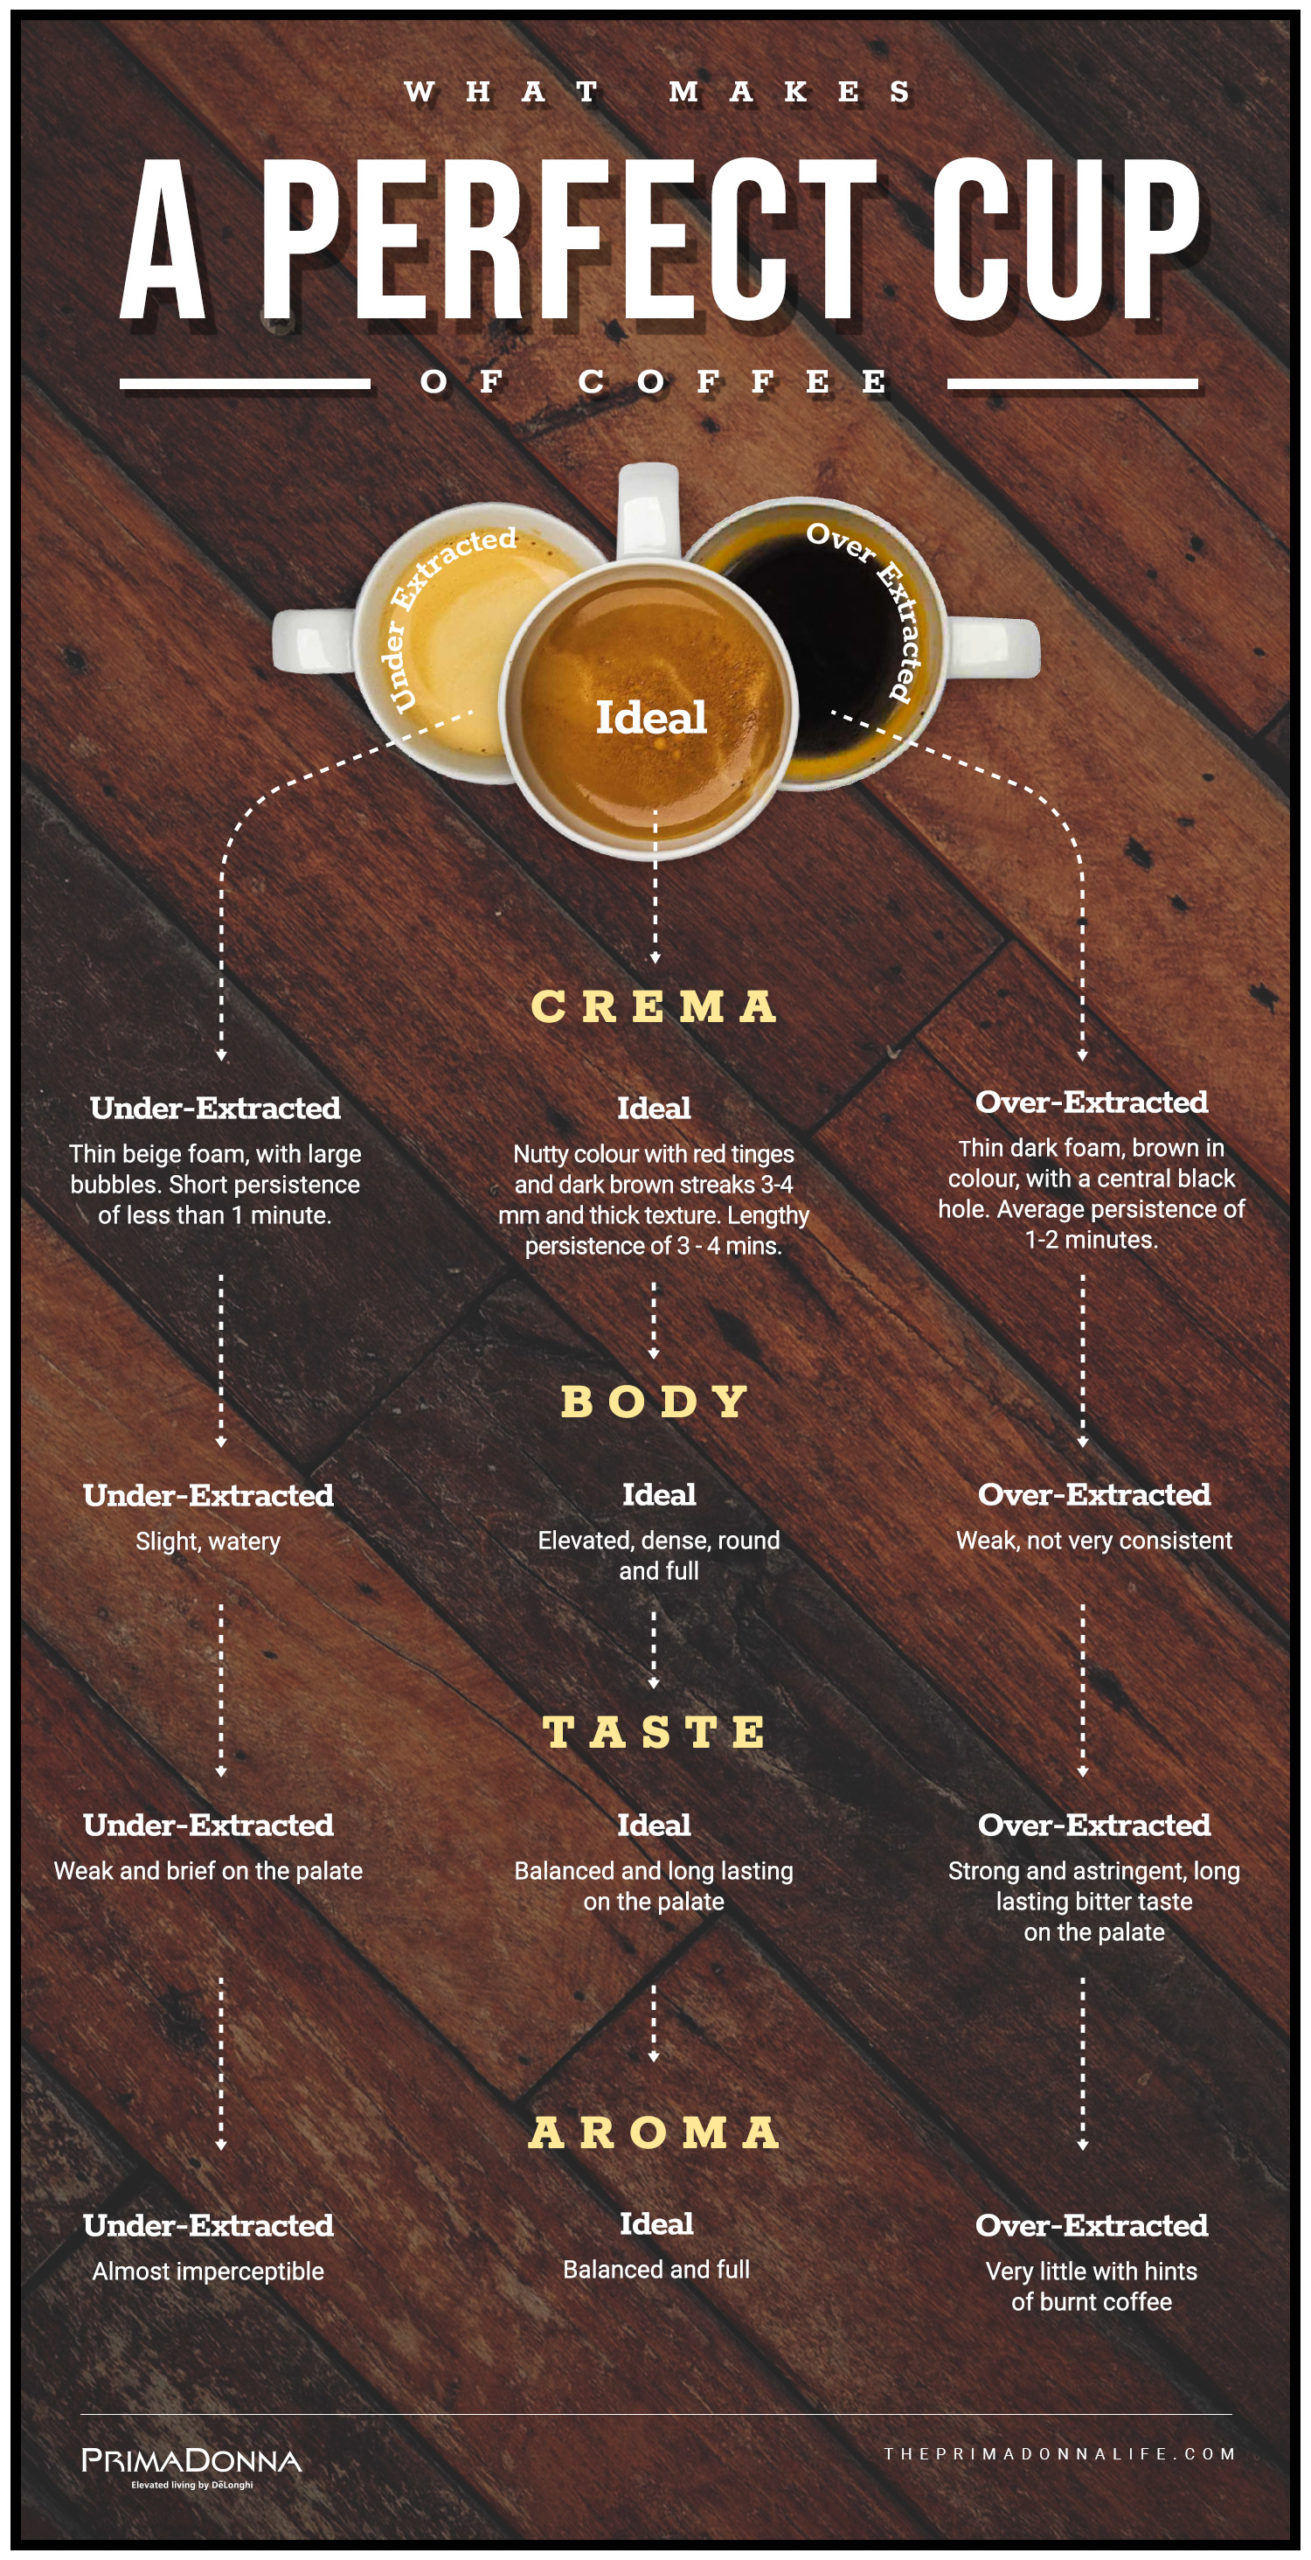 An infographic on what makes a perfect cup of coffee